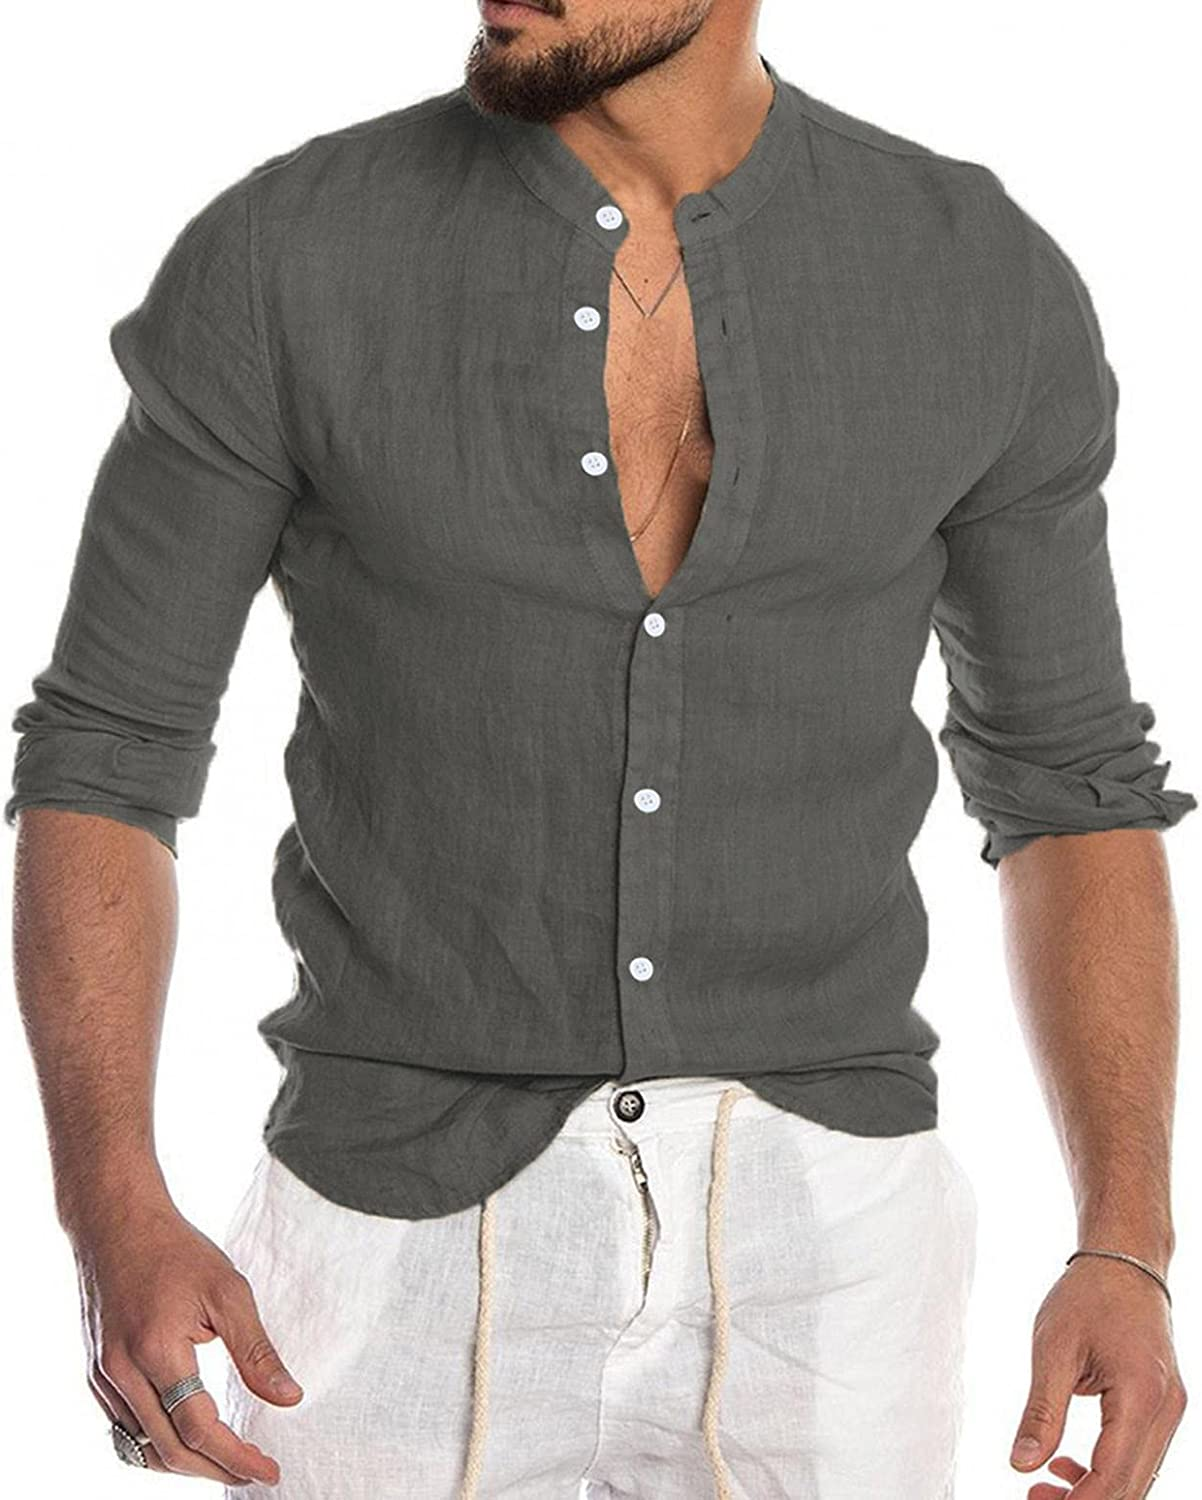 Big and Tall Shirts for Men Stand Collar Button Down Coats Soft Cozy Baggy Linen Outwear Workout Wicking Blouse